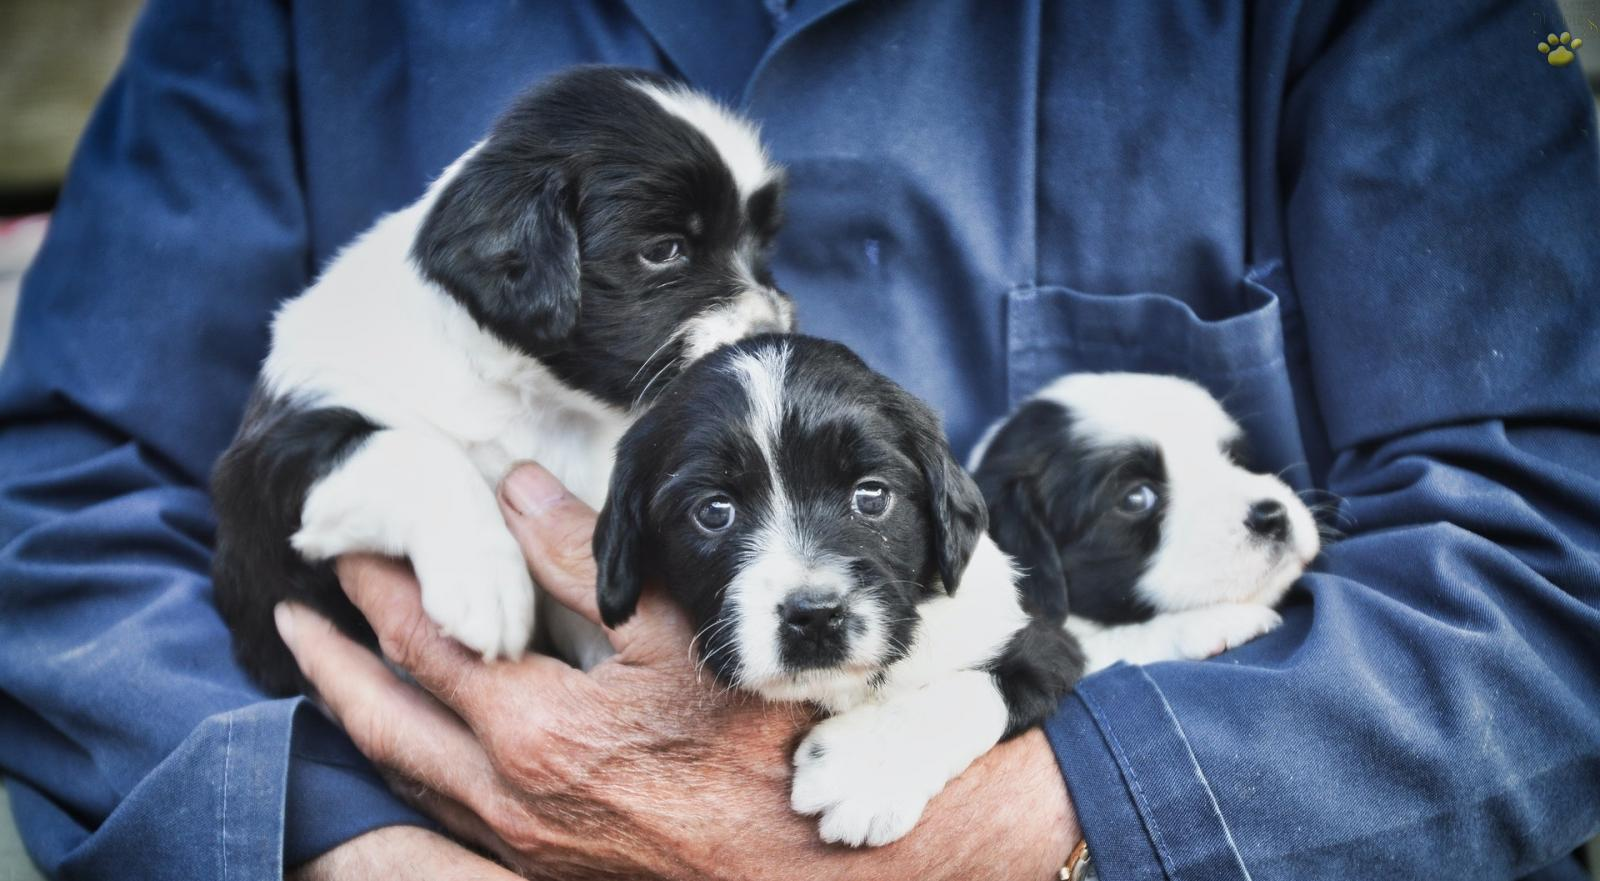 Man in blue shirt holding three black and white puppies